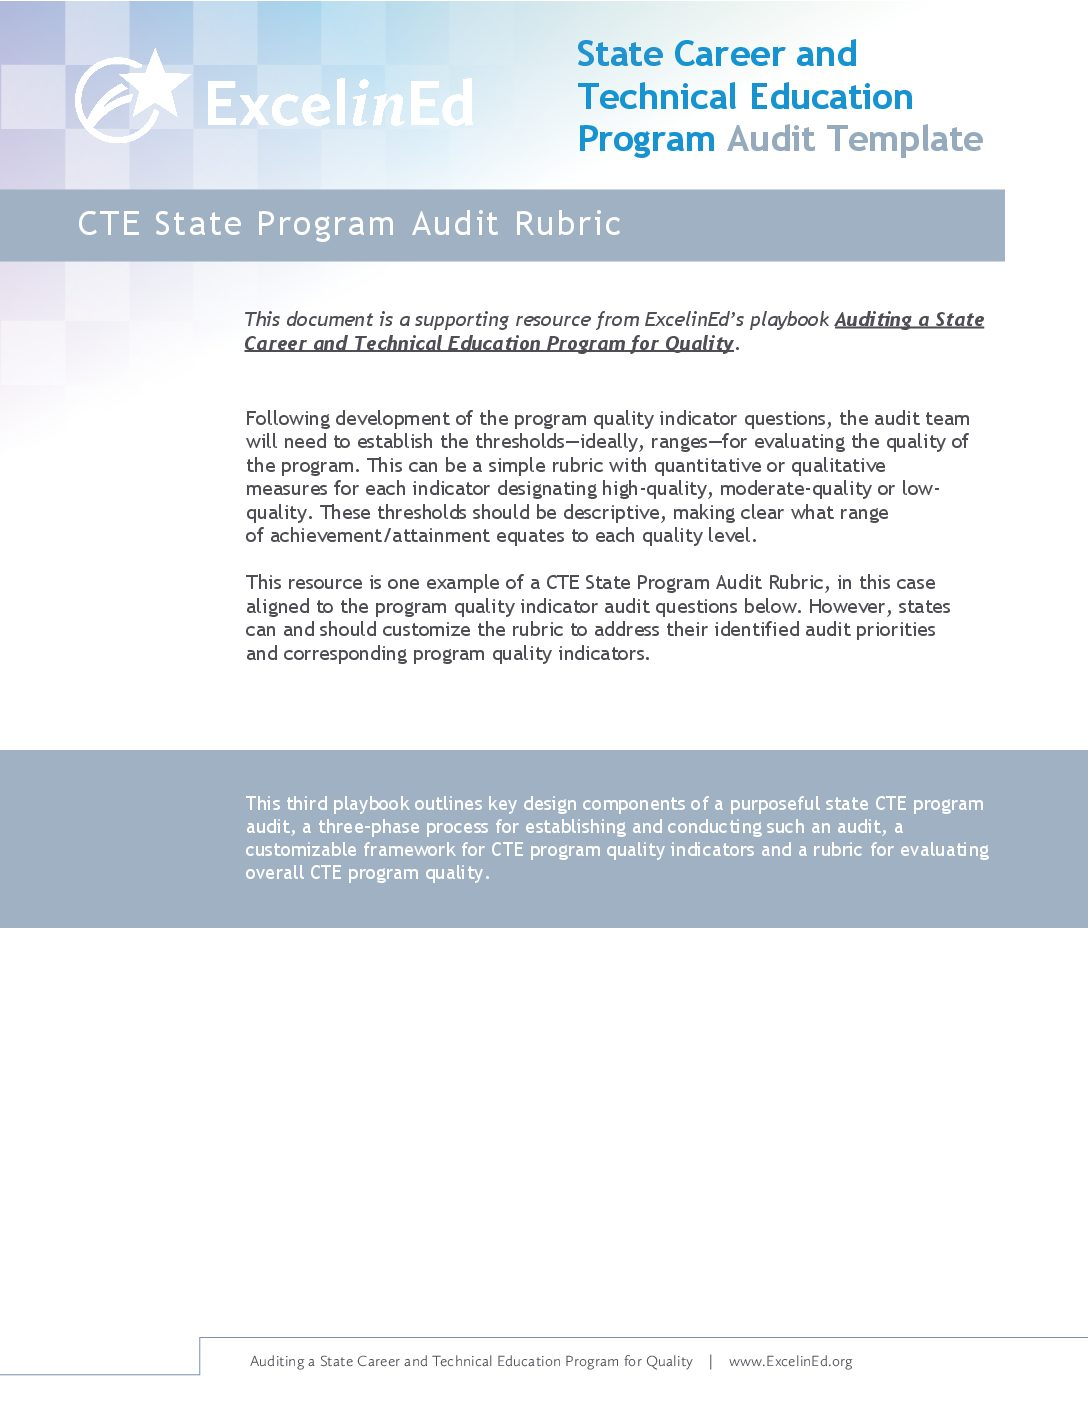 Playbook 3: CTE Audit Template &#8211; Audit Rubric>									 									</a> 									<a href=